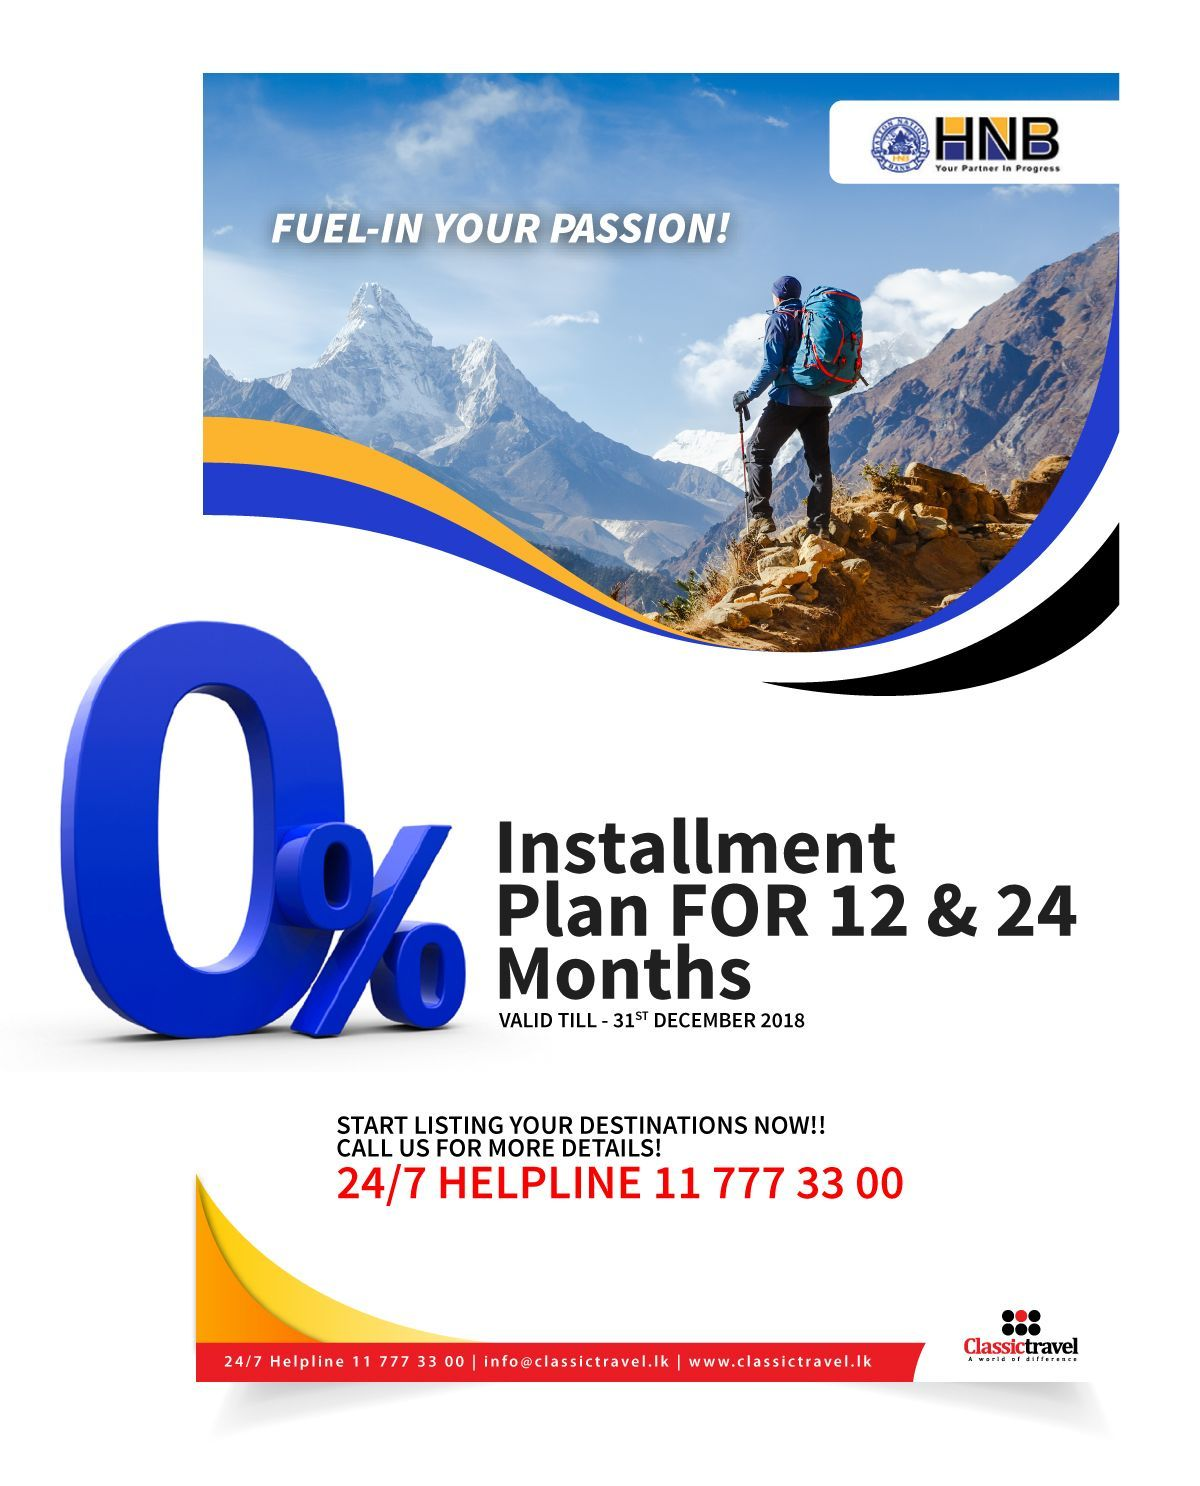 0 Installment Plans On Travel For 12 18 24 Months With Com